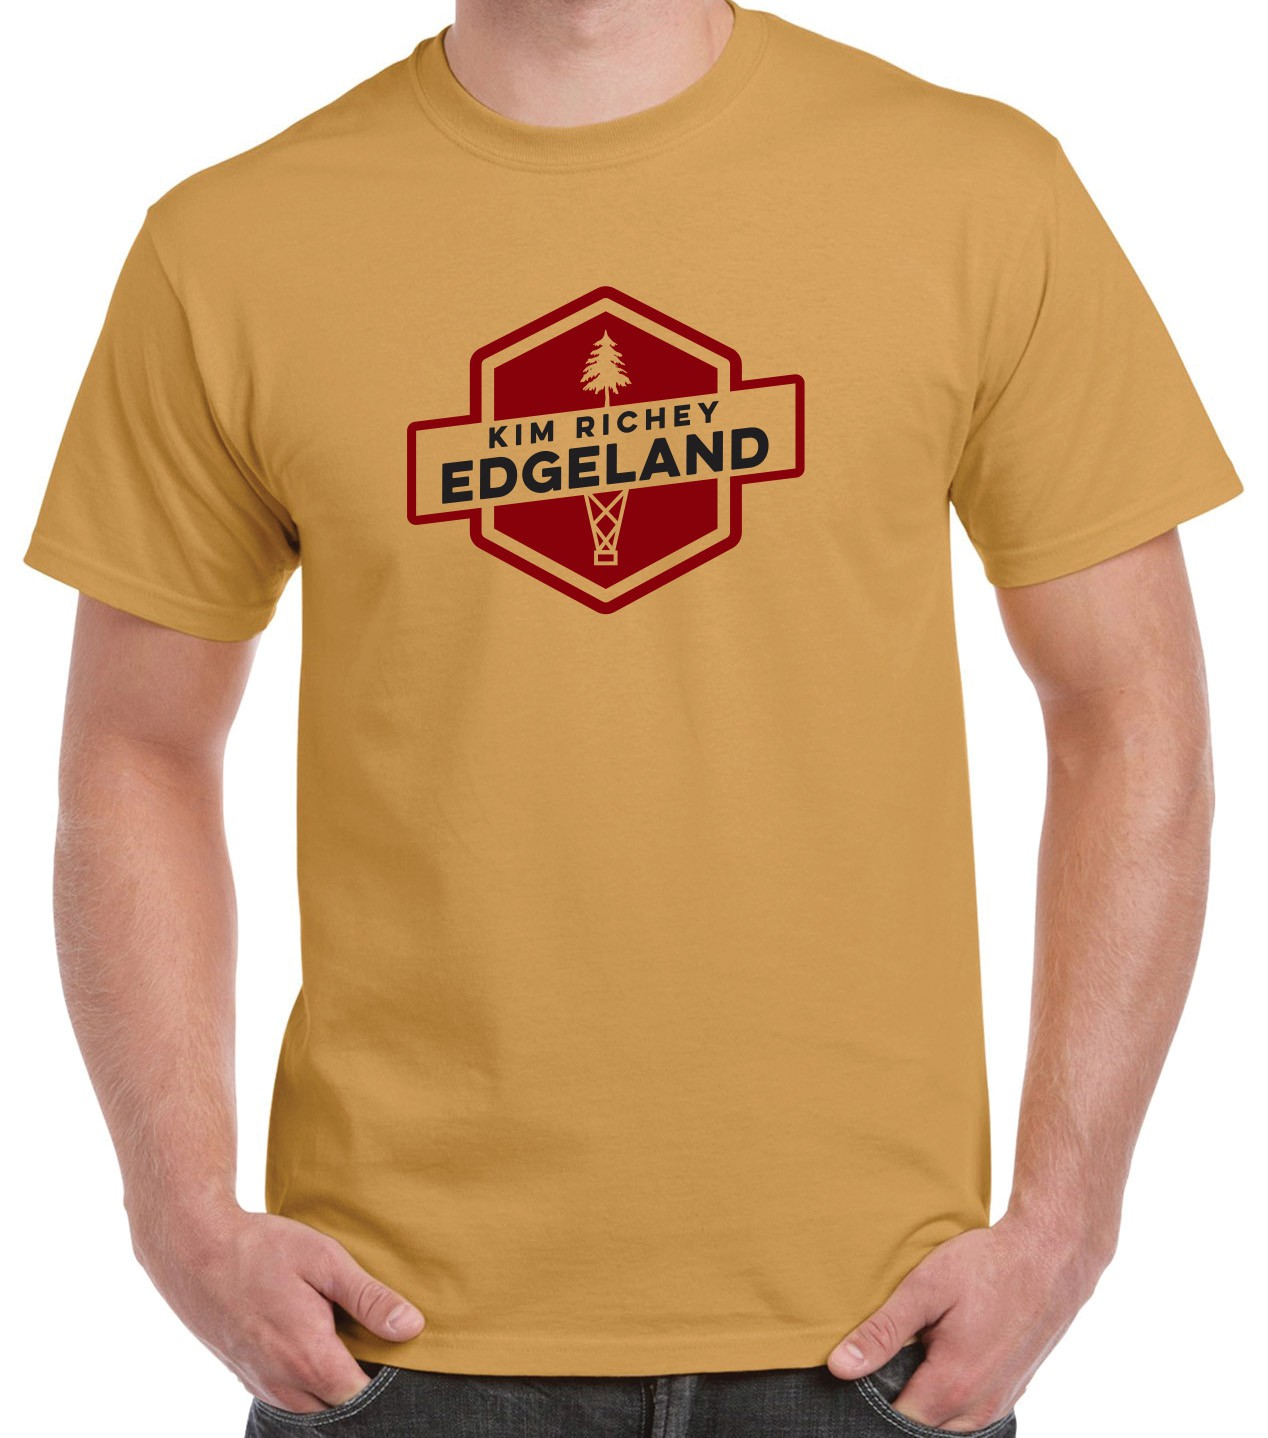 Kim Richey - Edgeland - T-Shirt